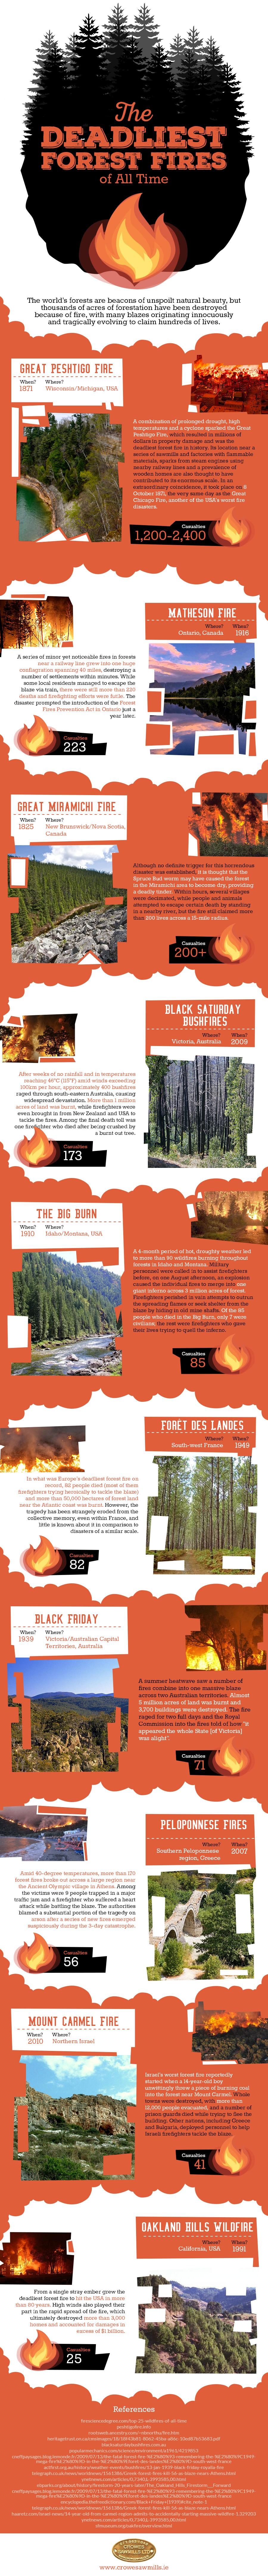 Deadliest forest fires infographic